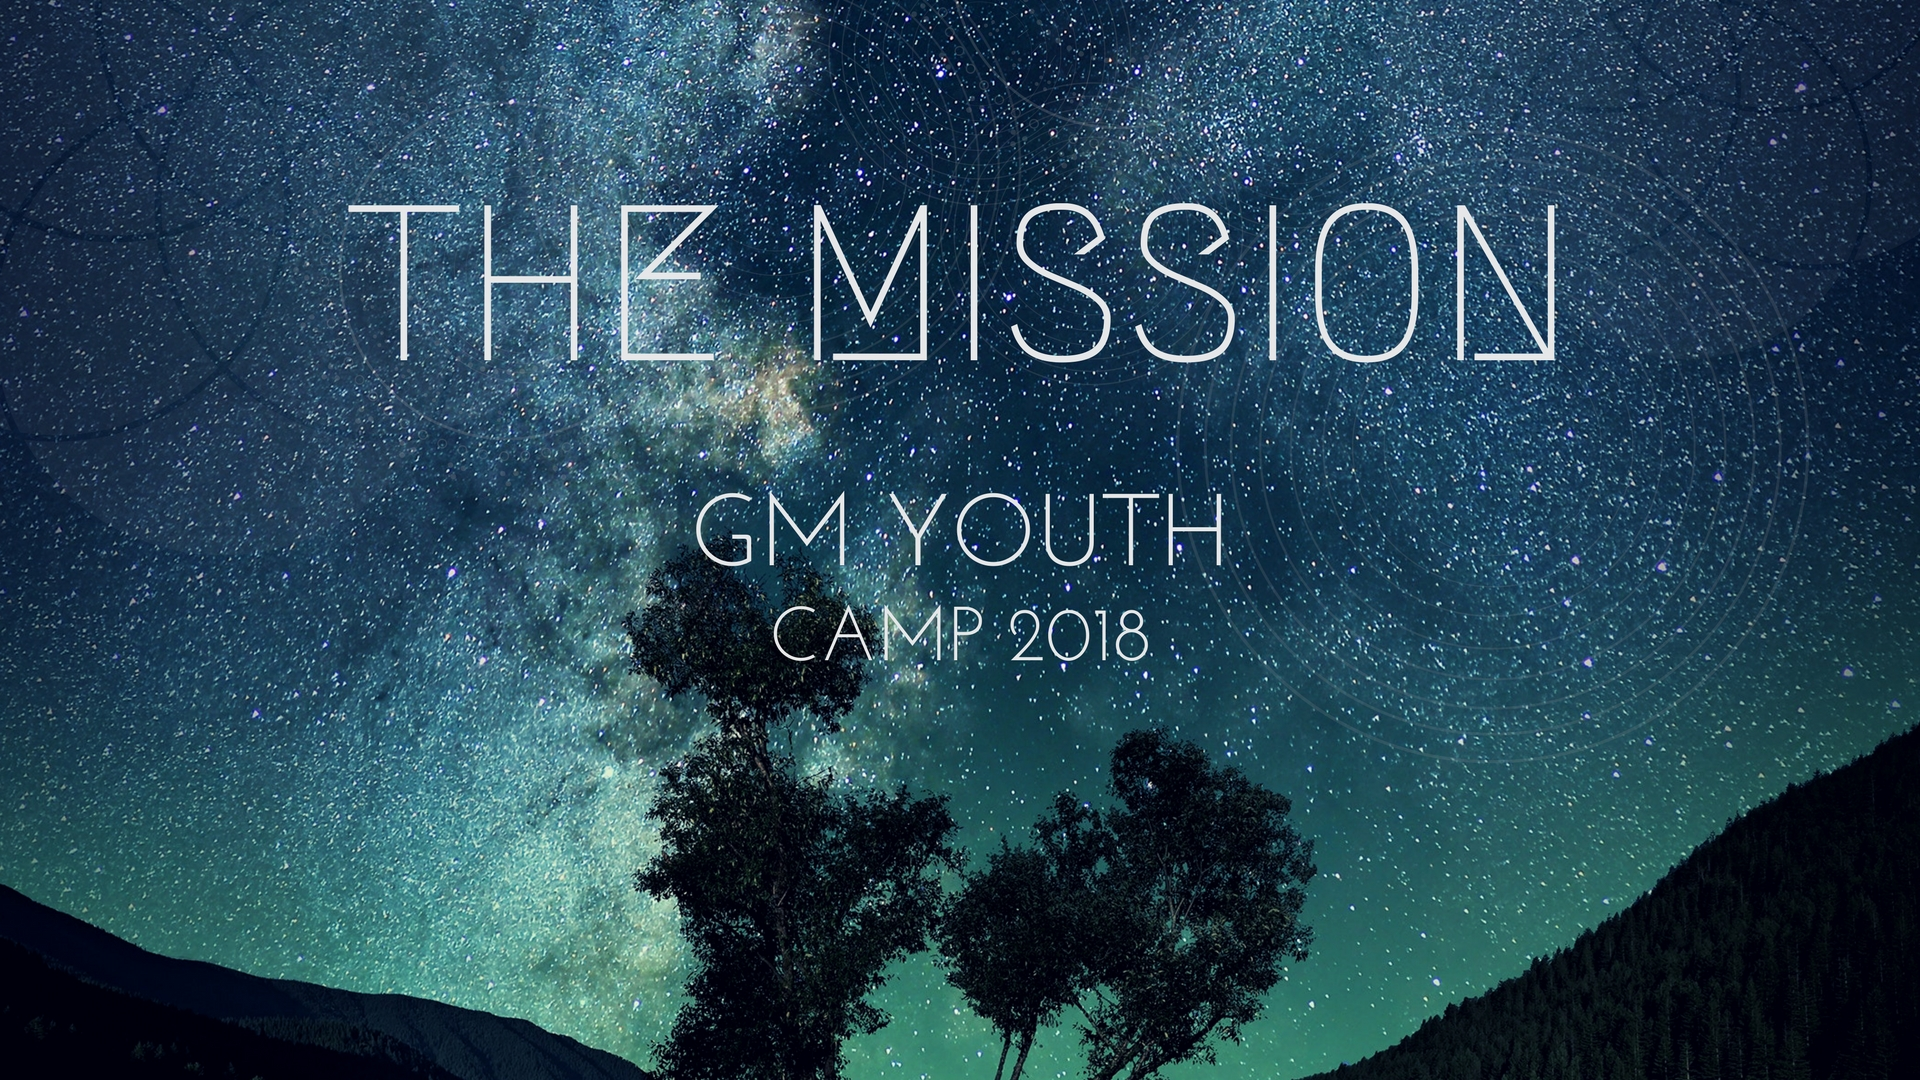 GM Youth Camp 2018